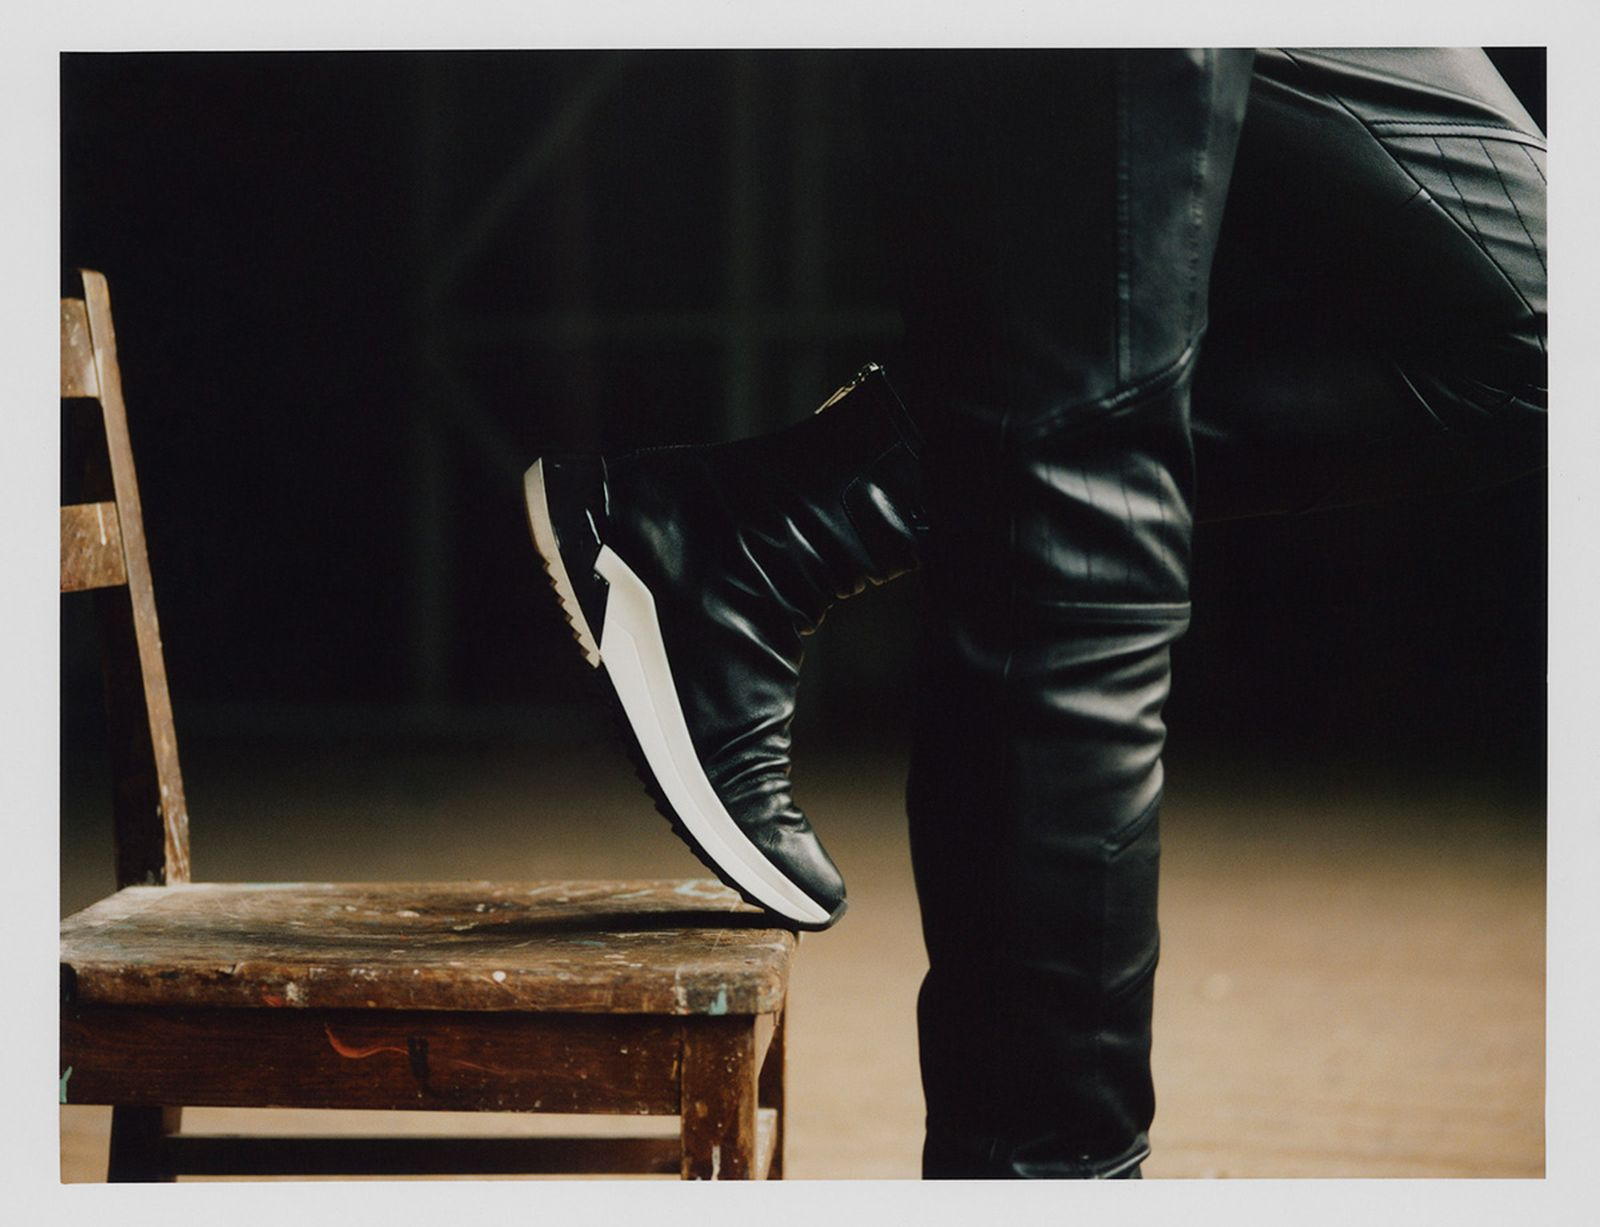 balmain new sneaker collection film vitali gelwich